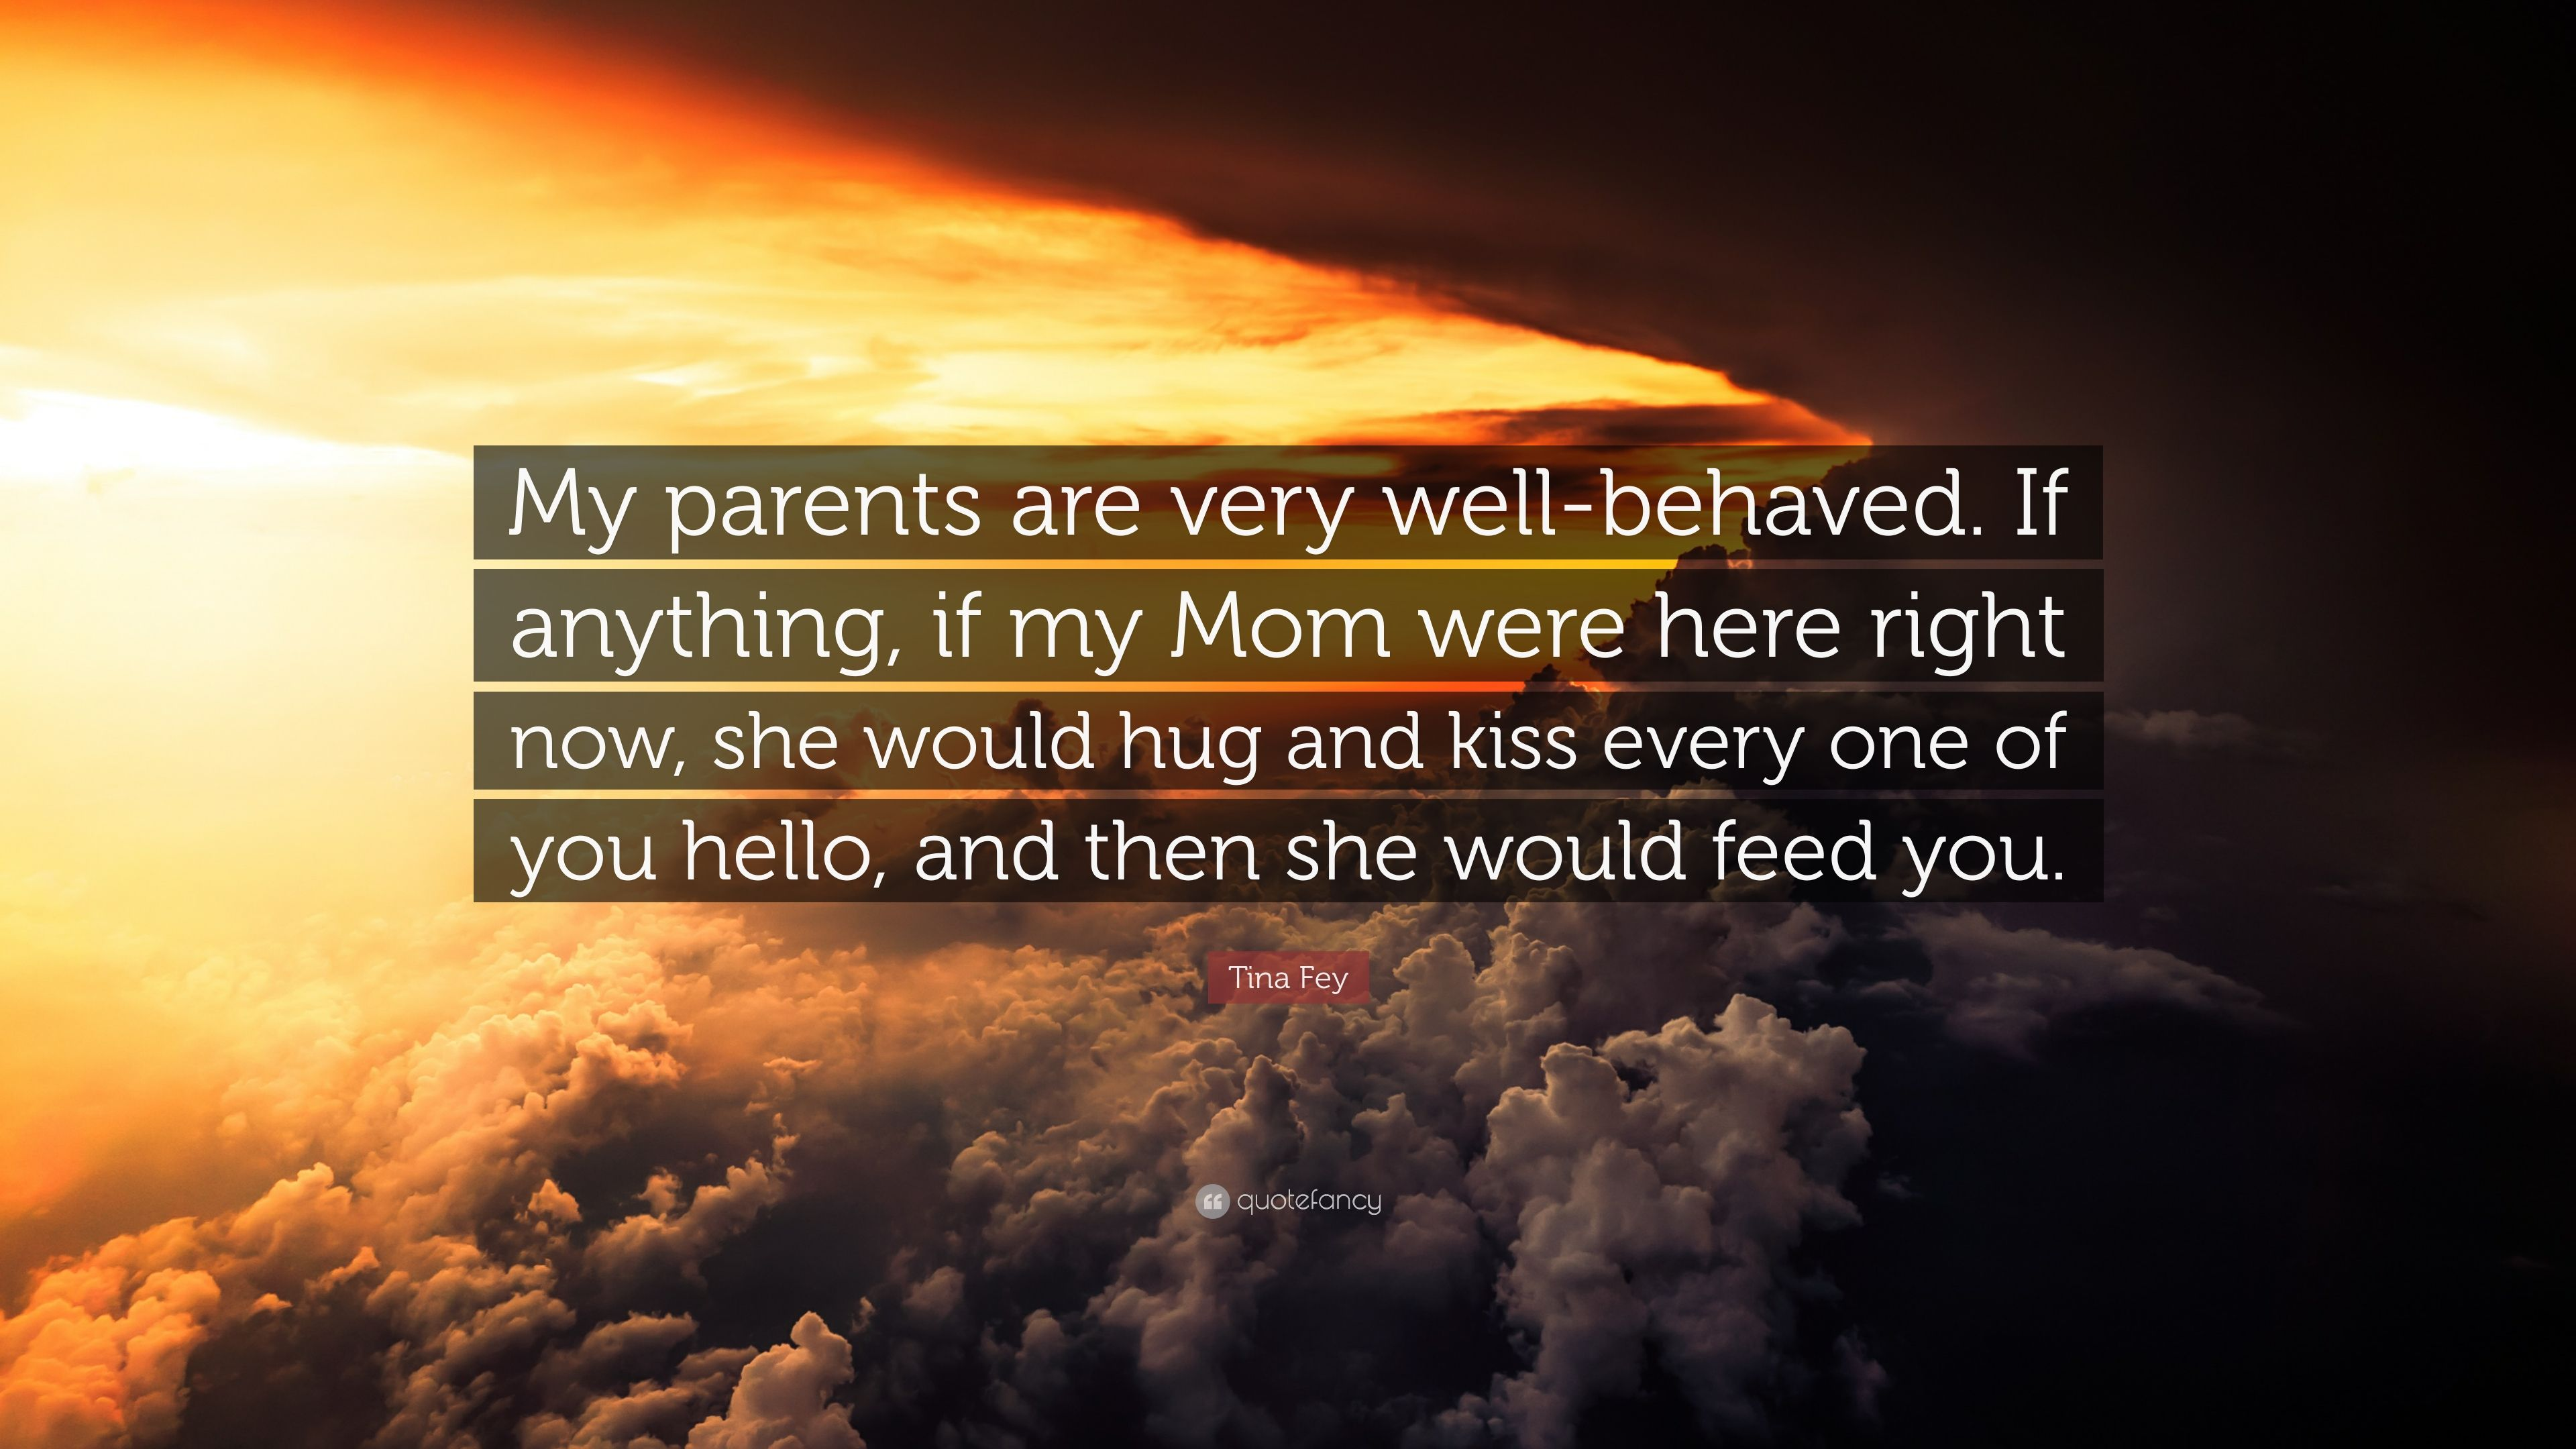 6 Things You Learn Your Parents Were Right About